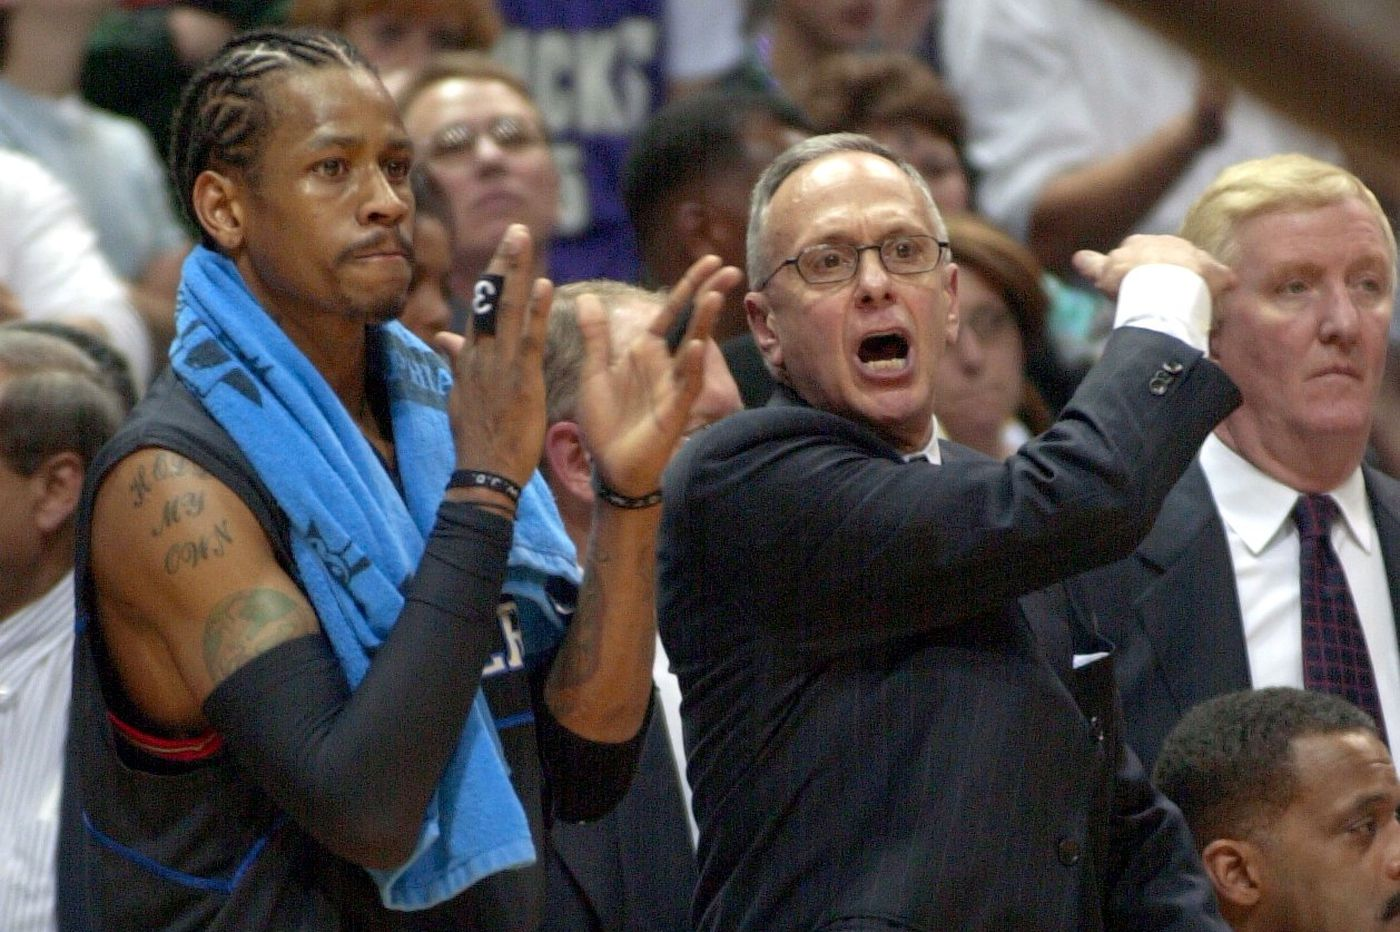 The Sixers need a new coach, and former coach Larry Brown has this observation